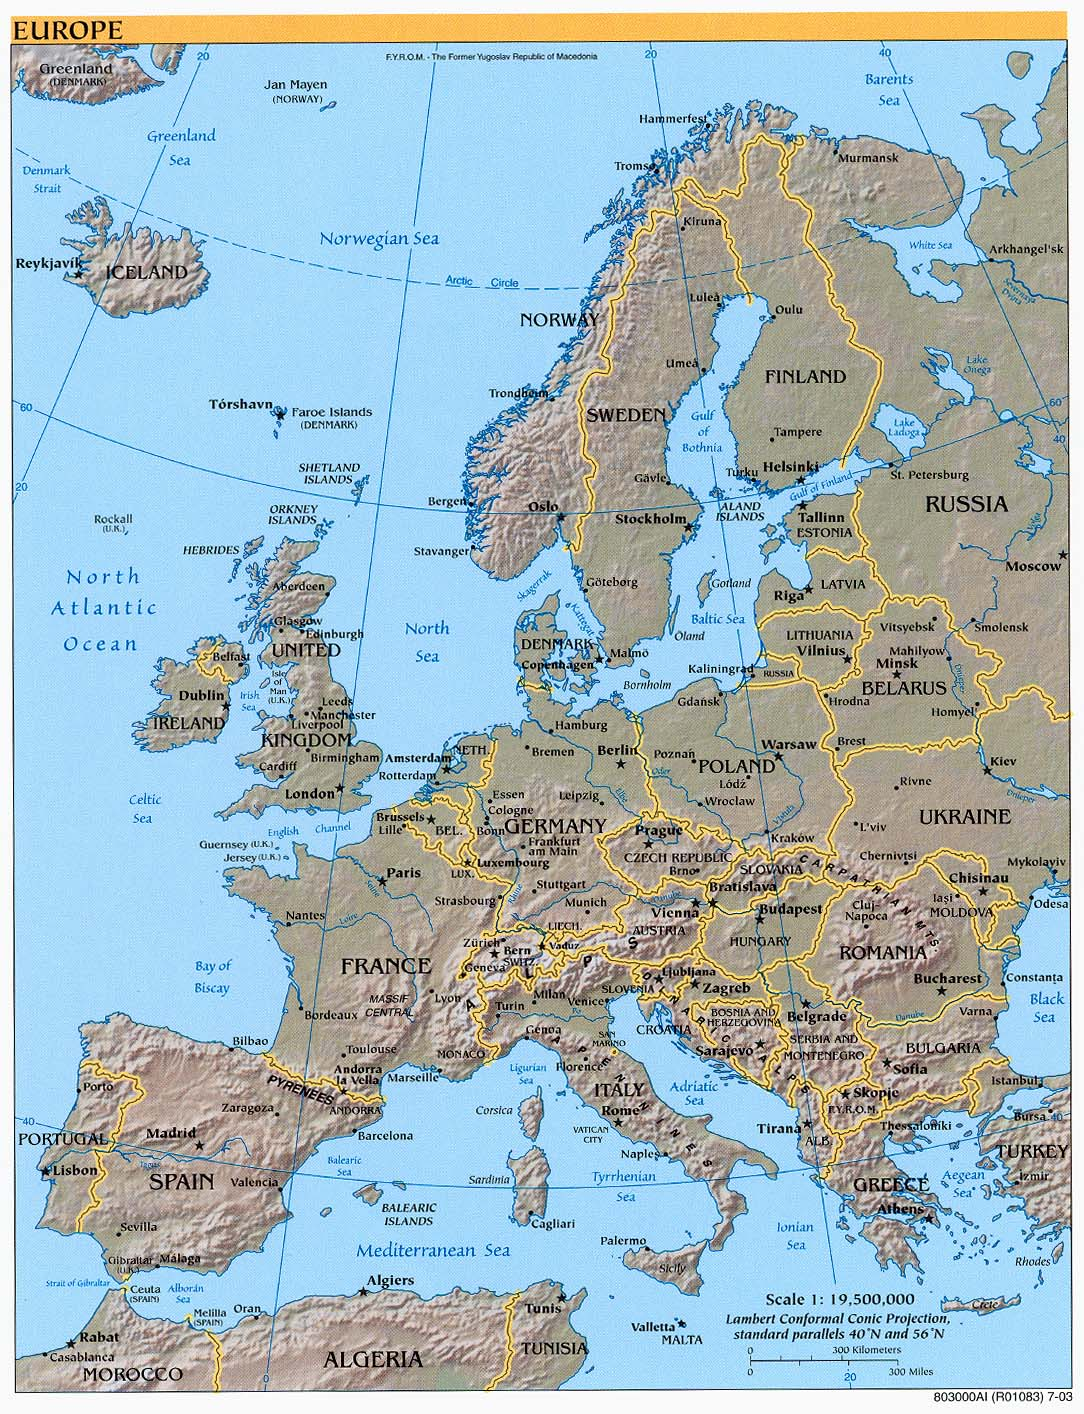 Maps Map Of Europe Labeled